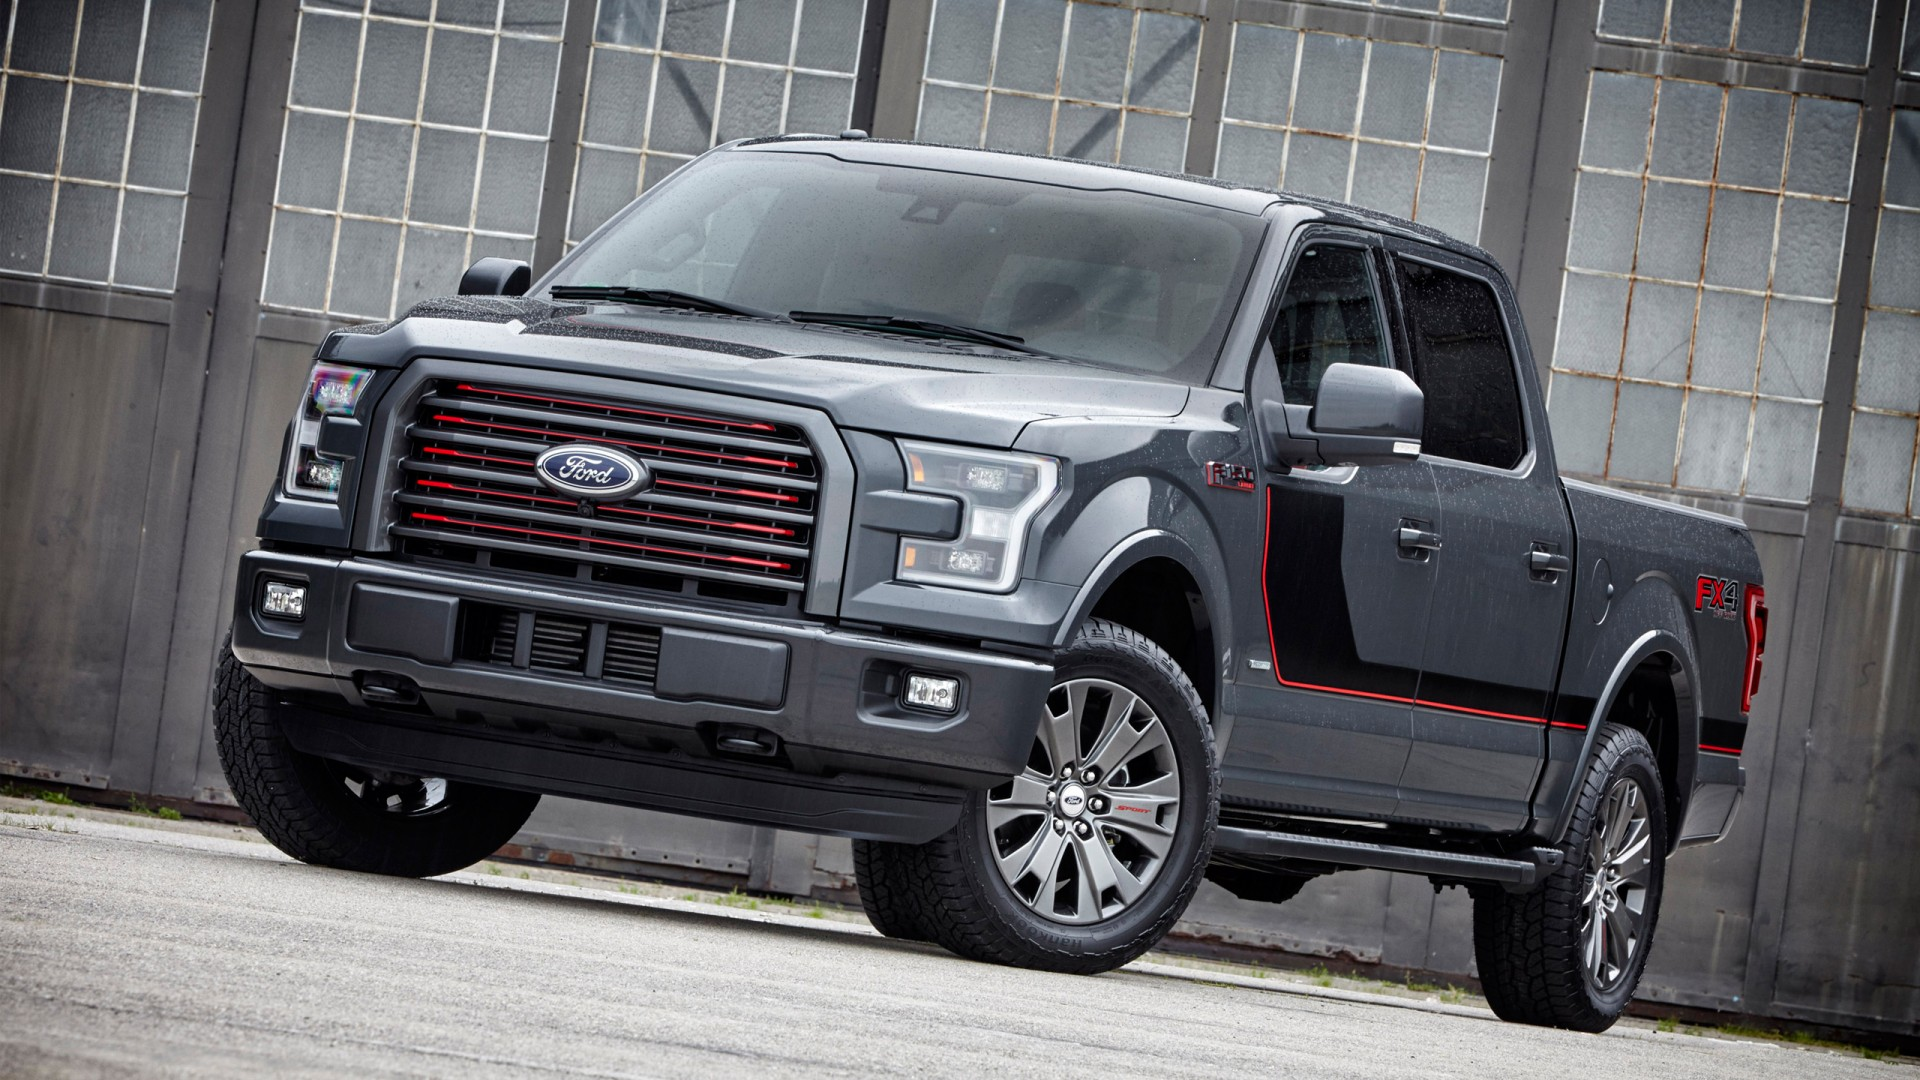 2016 Ford F 150 Lariat Appearance Package Wallpaper | HD Car Wallpapers | ID #5408